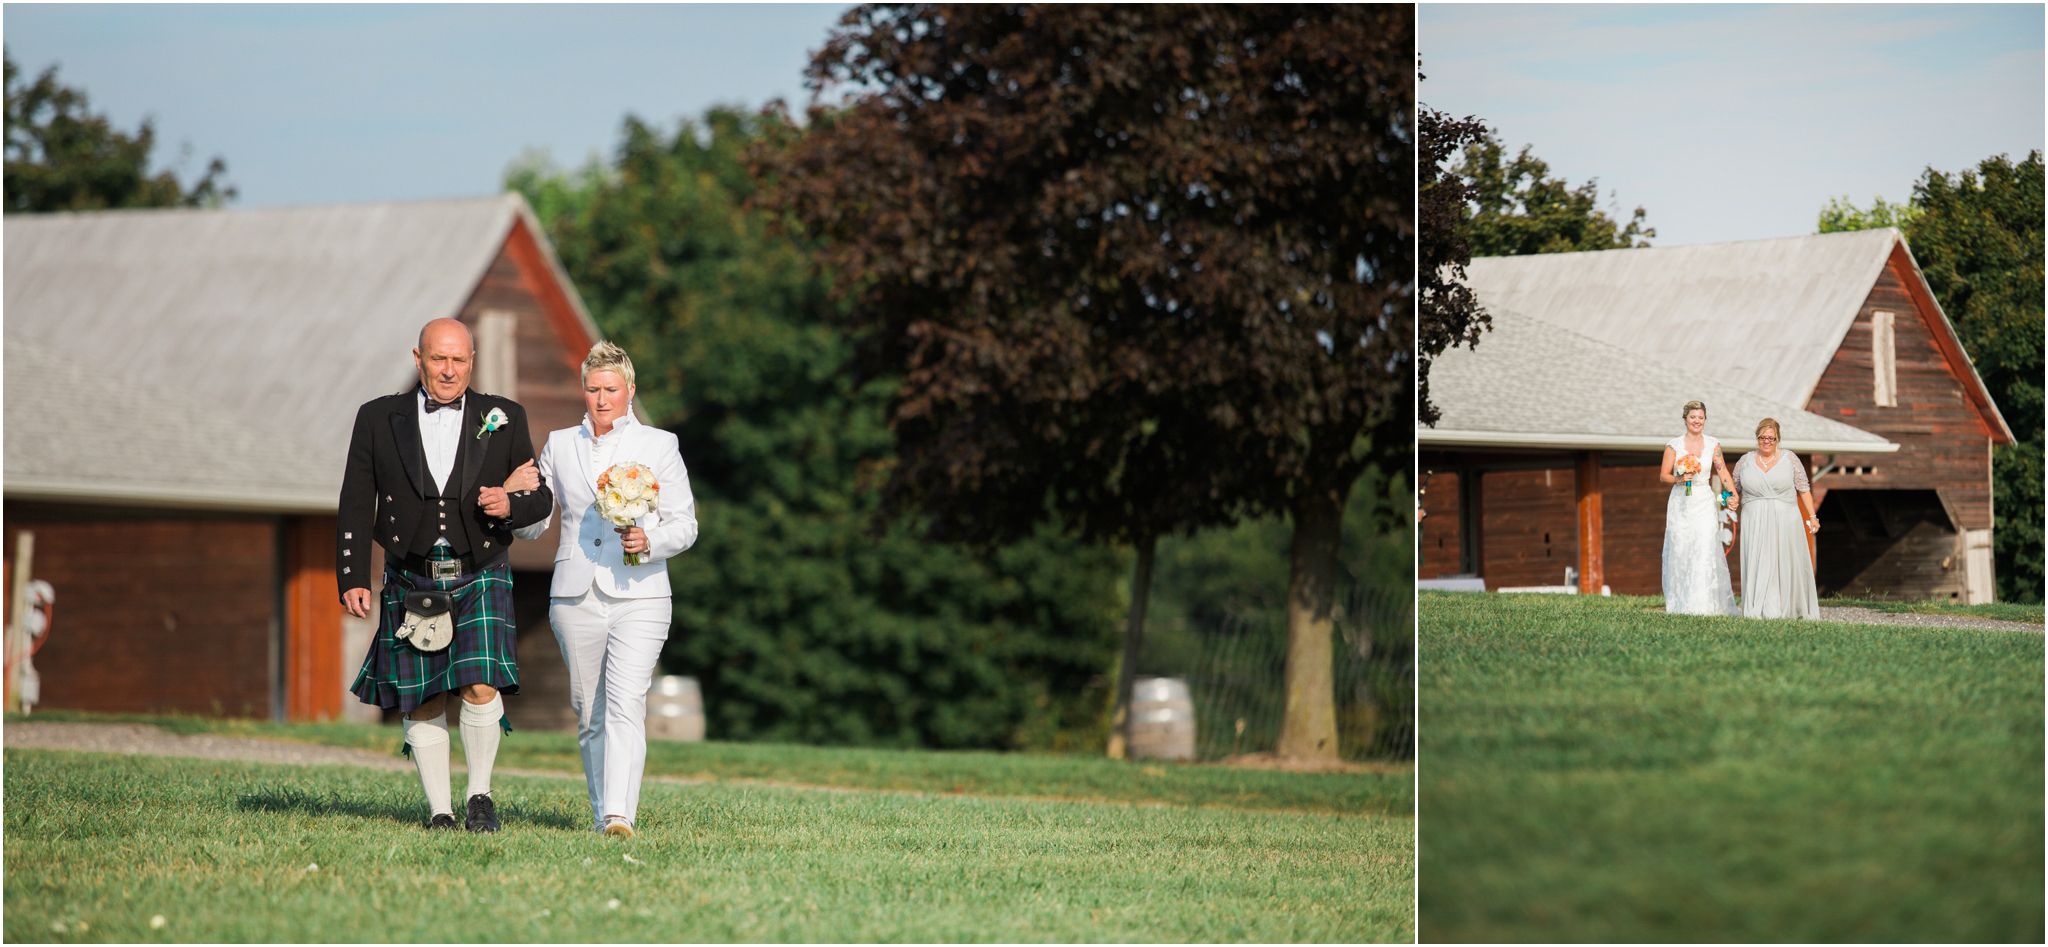 bethany-grace-photography-linganore-winecellars-same-sex-lgbtq-pink-blue-winery-outdoor-wedding-10.JPG